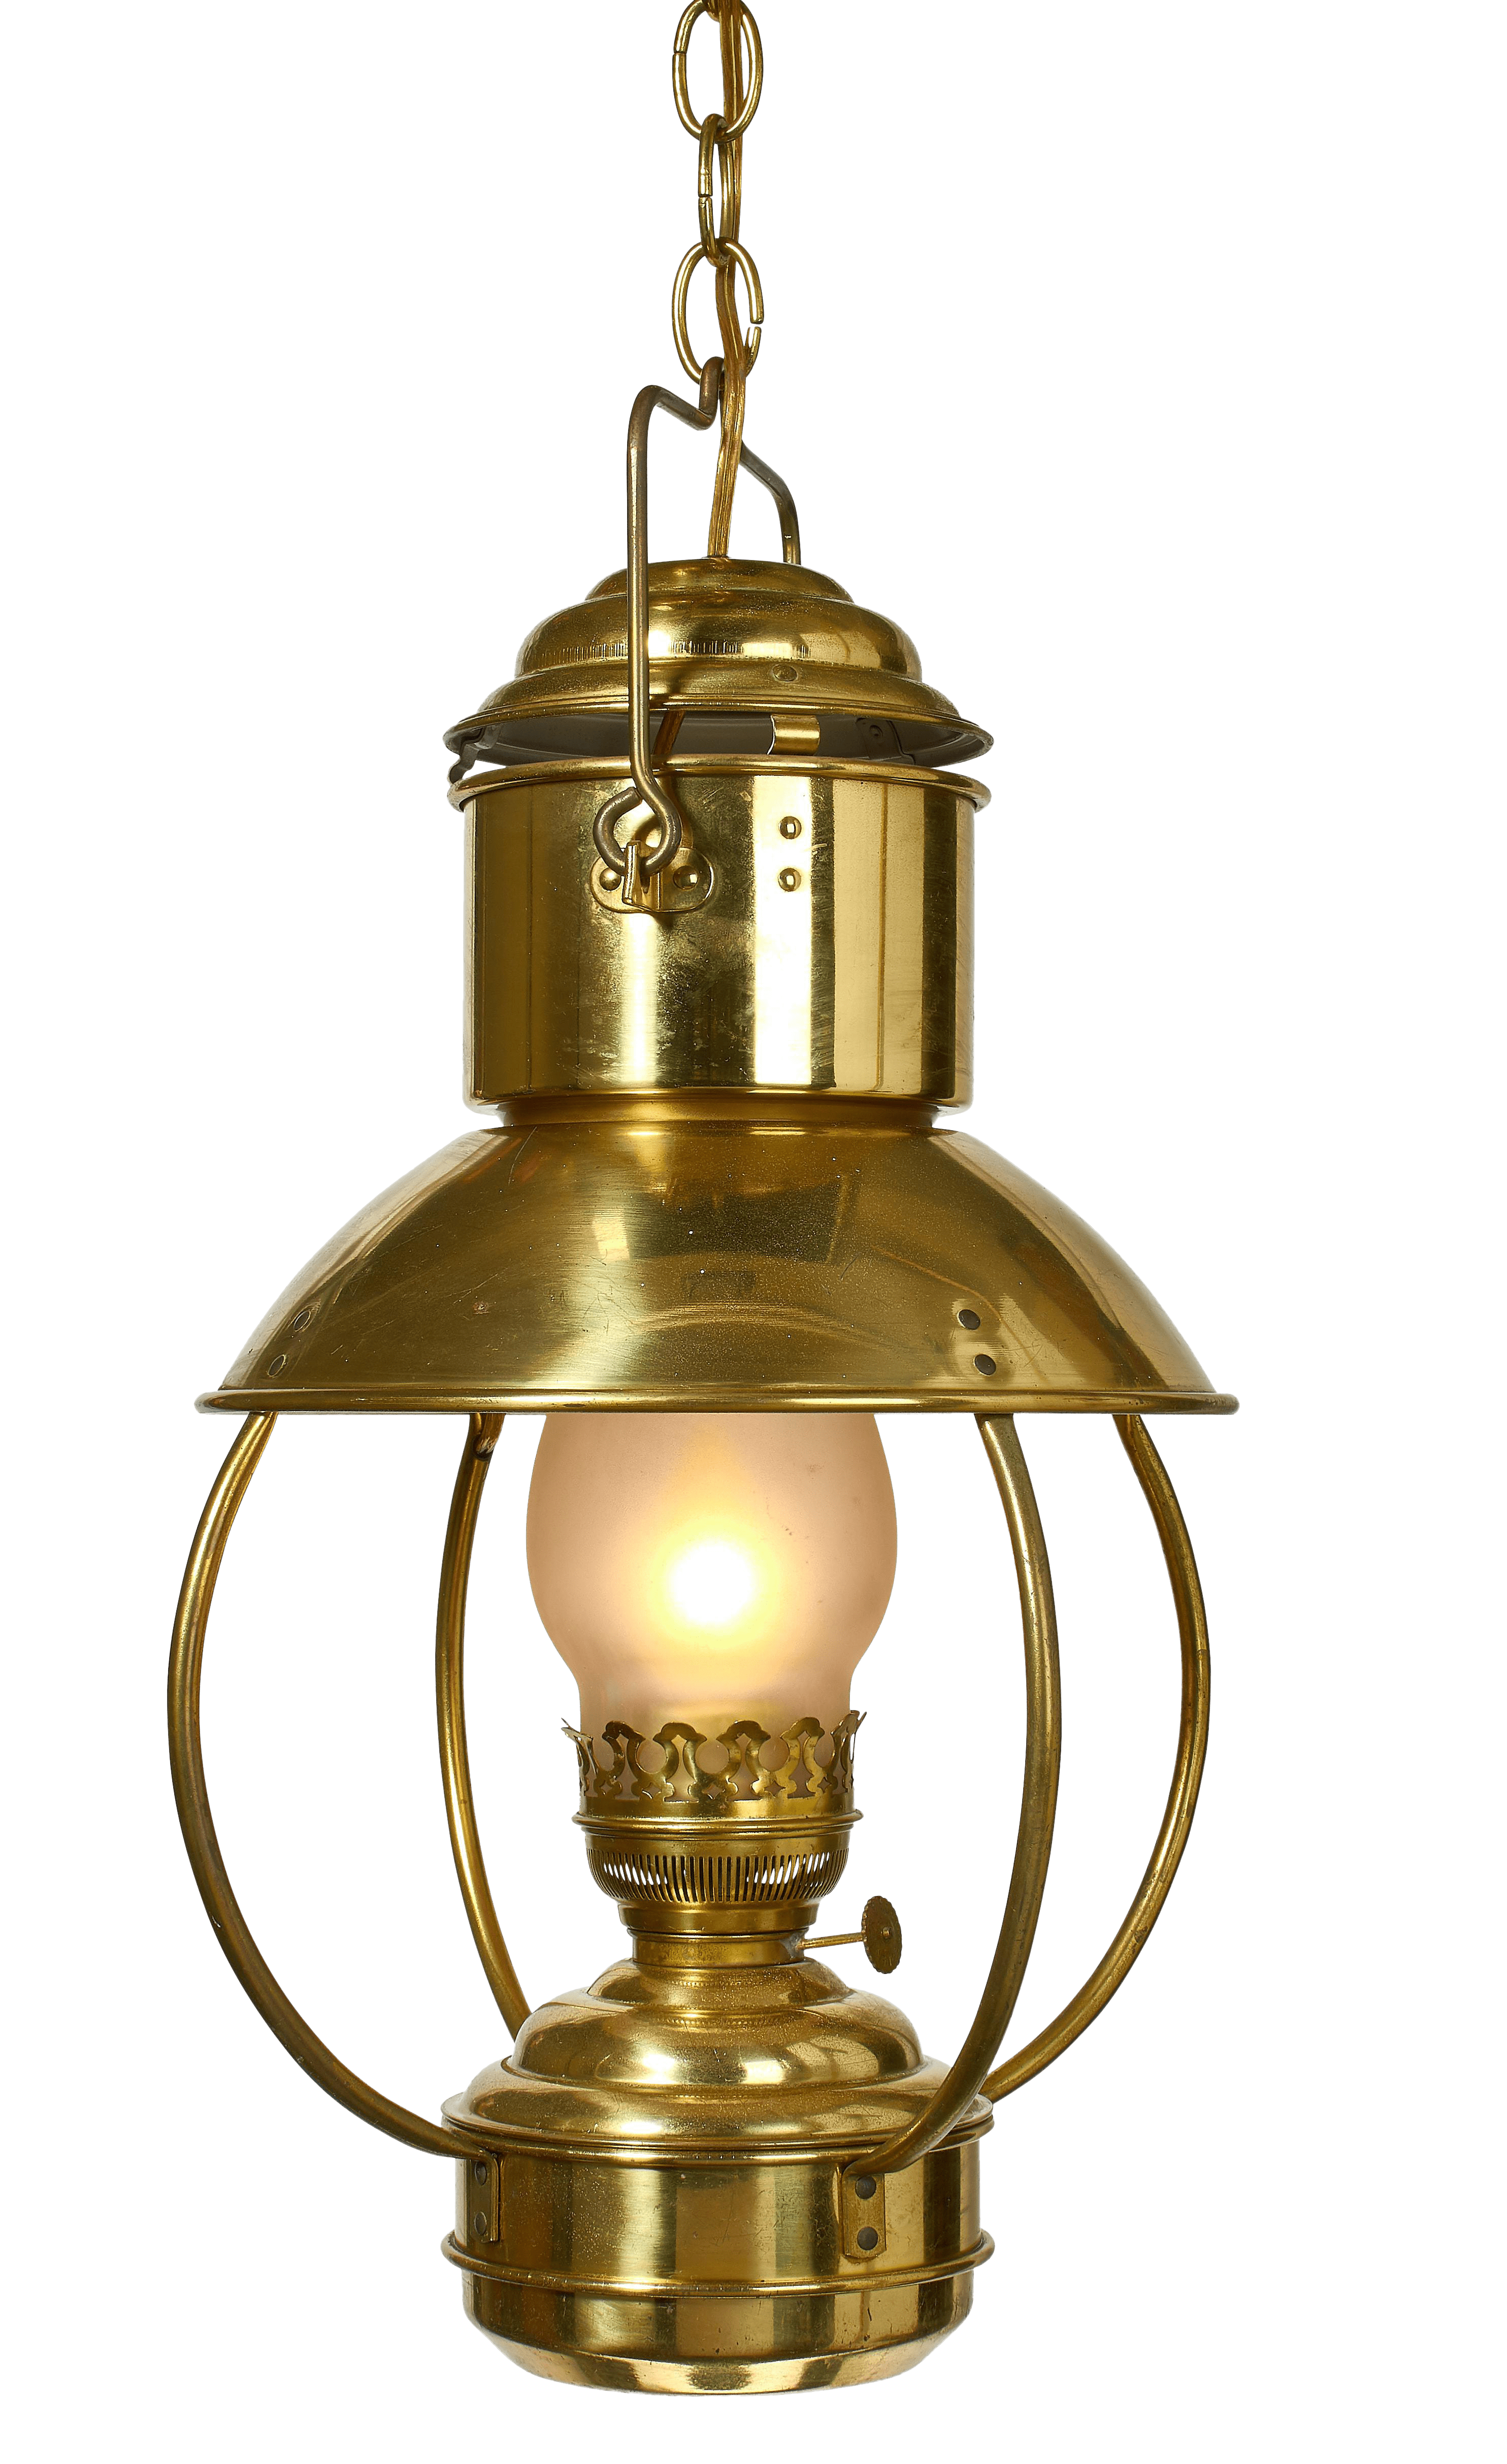 Modern Kerosene Lamp Antique Brass Converted Kerosene Lantern